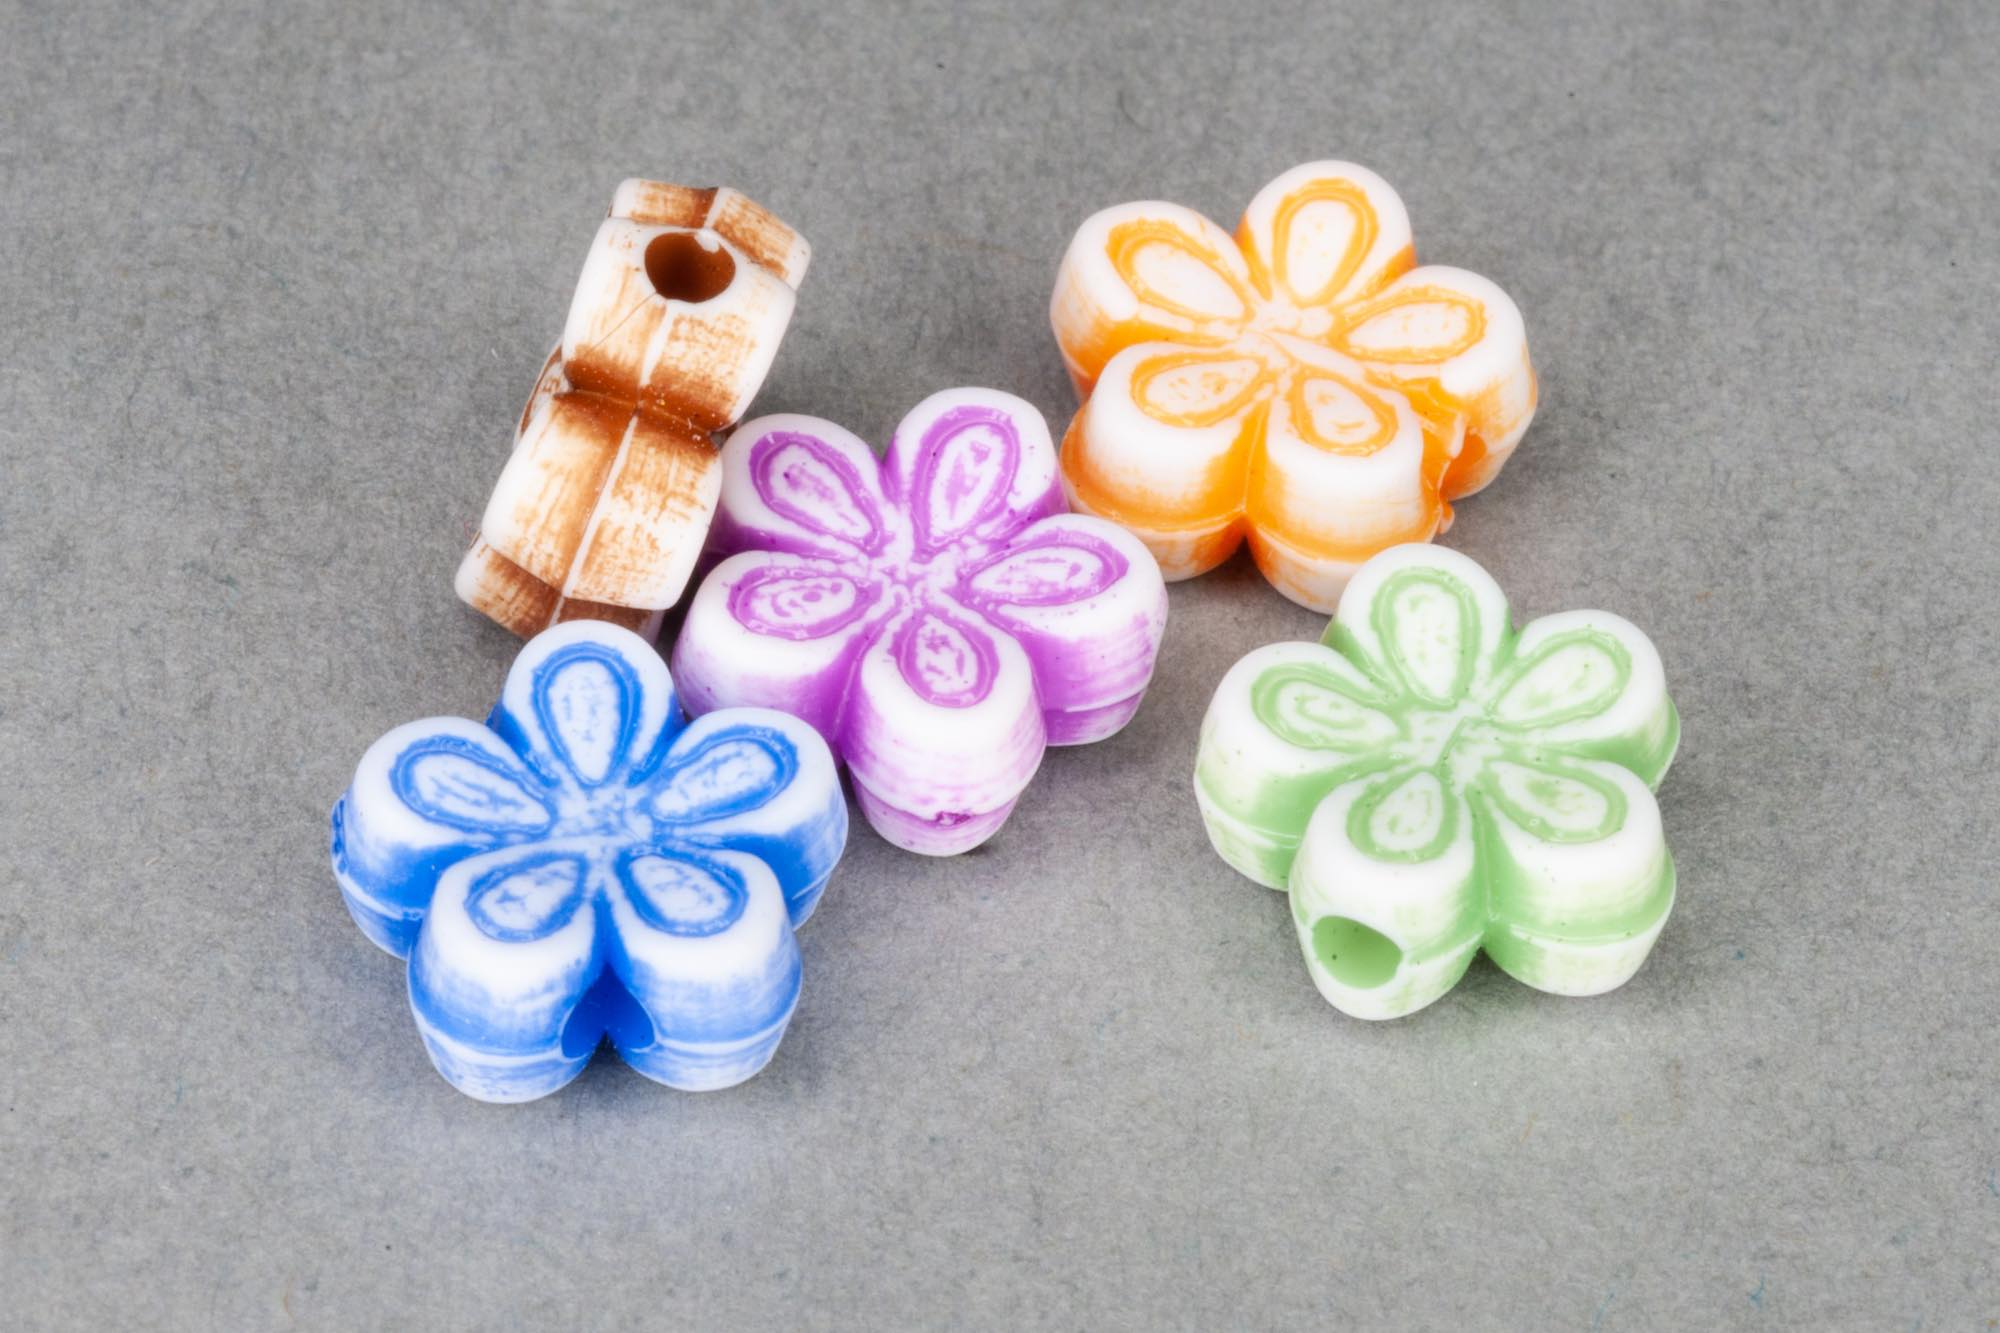 Mixed Acrylic Flower Beads, 8x4mm, 1mm hole